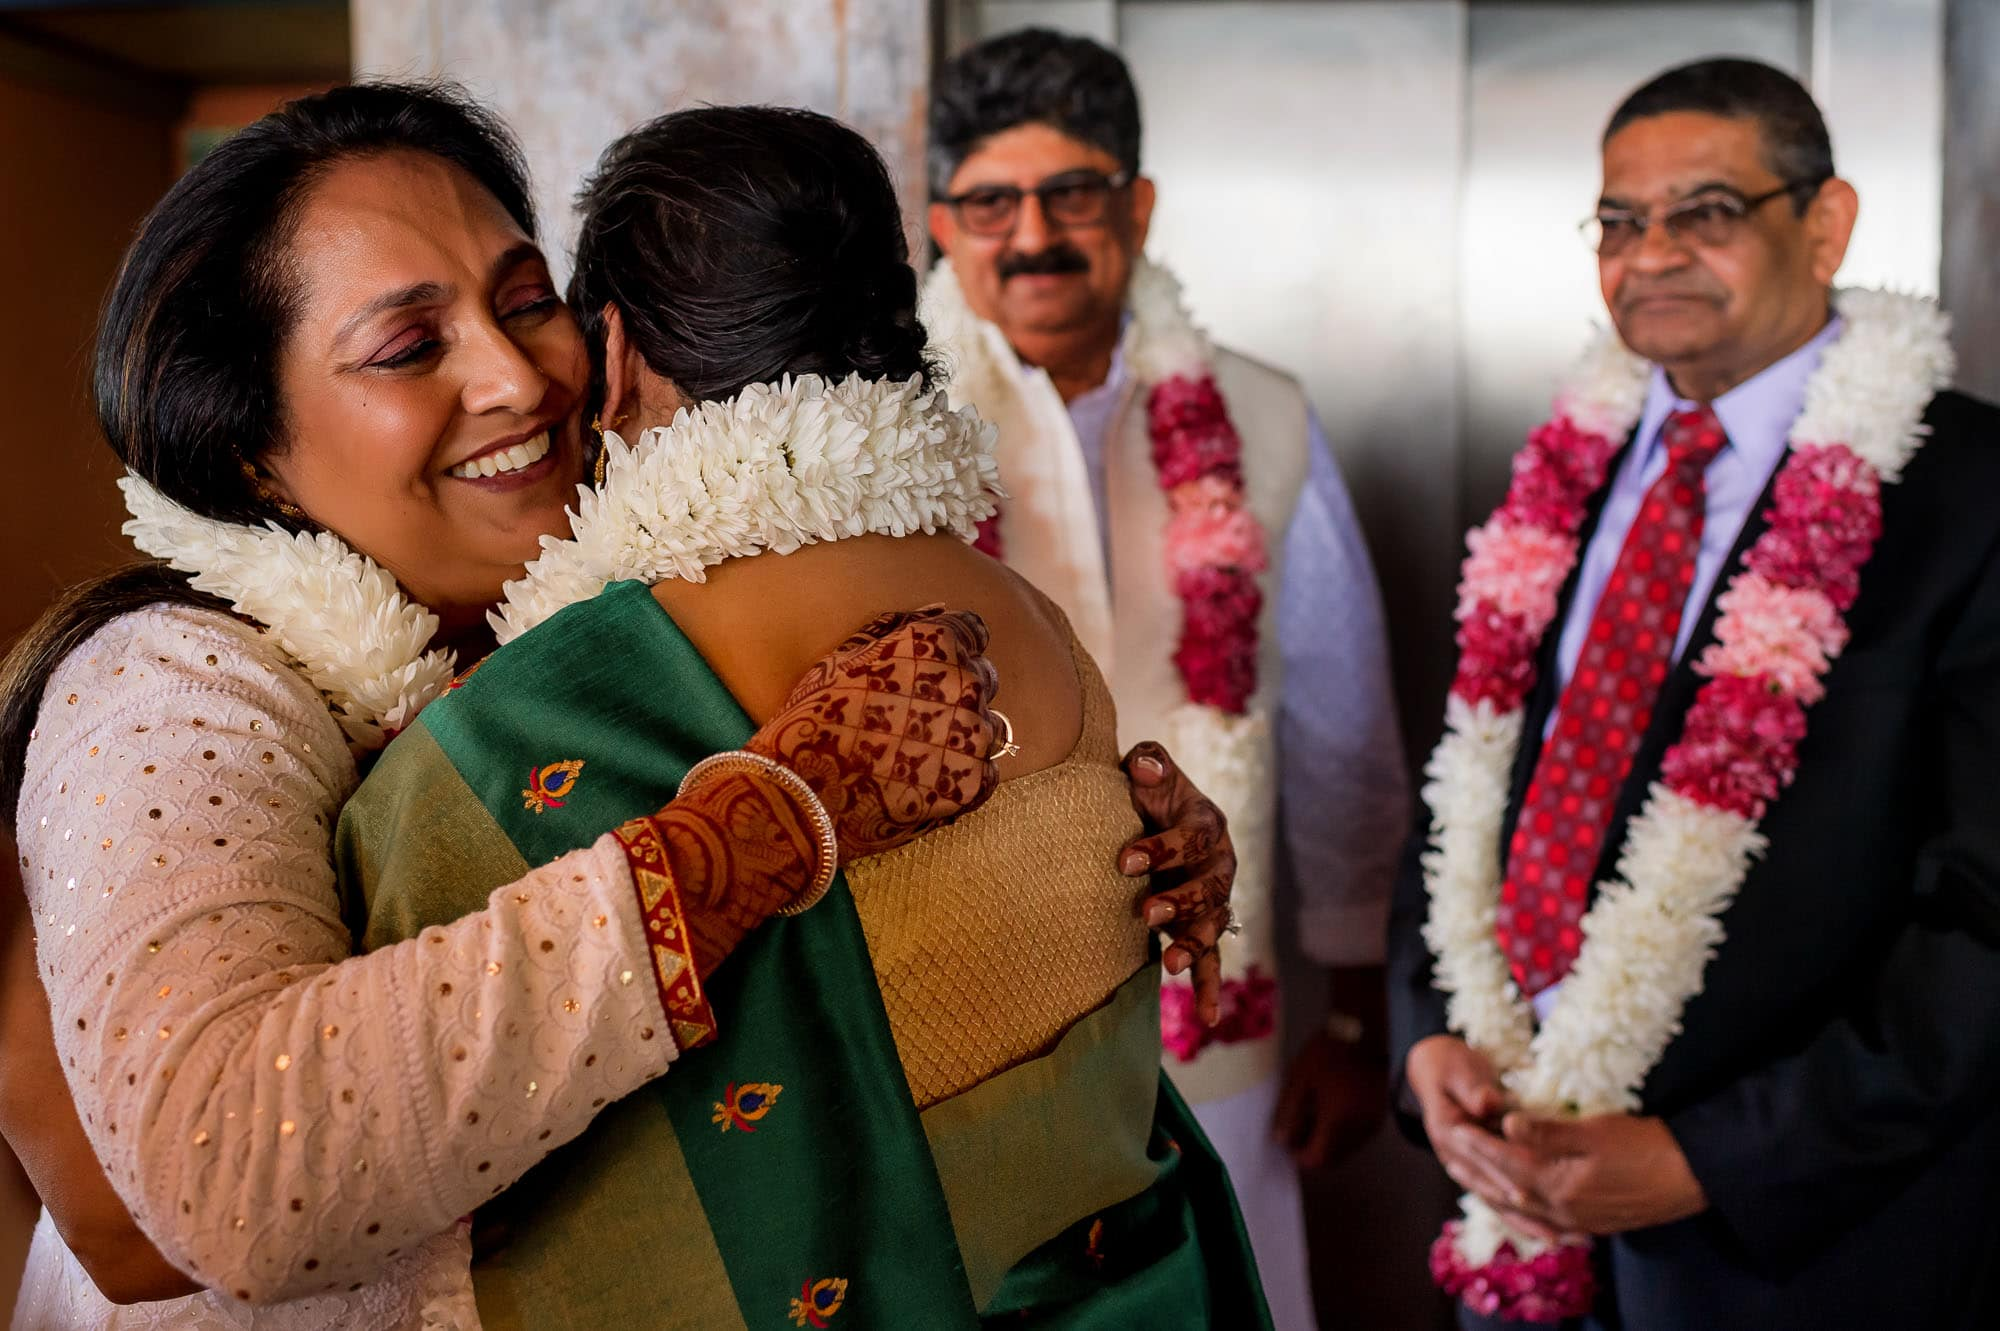 The mothers of the bride and groom share a hug